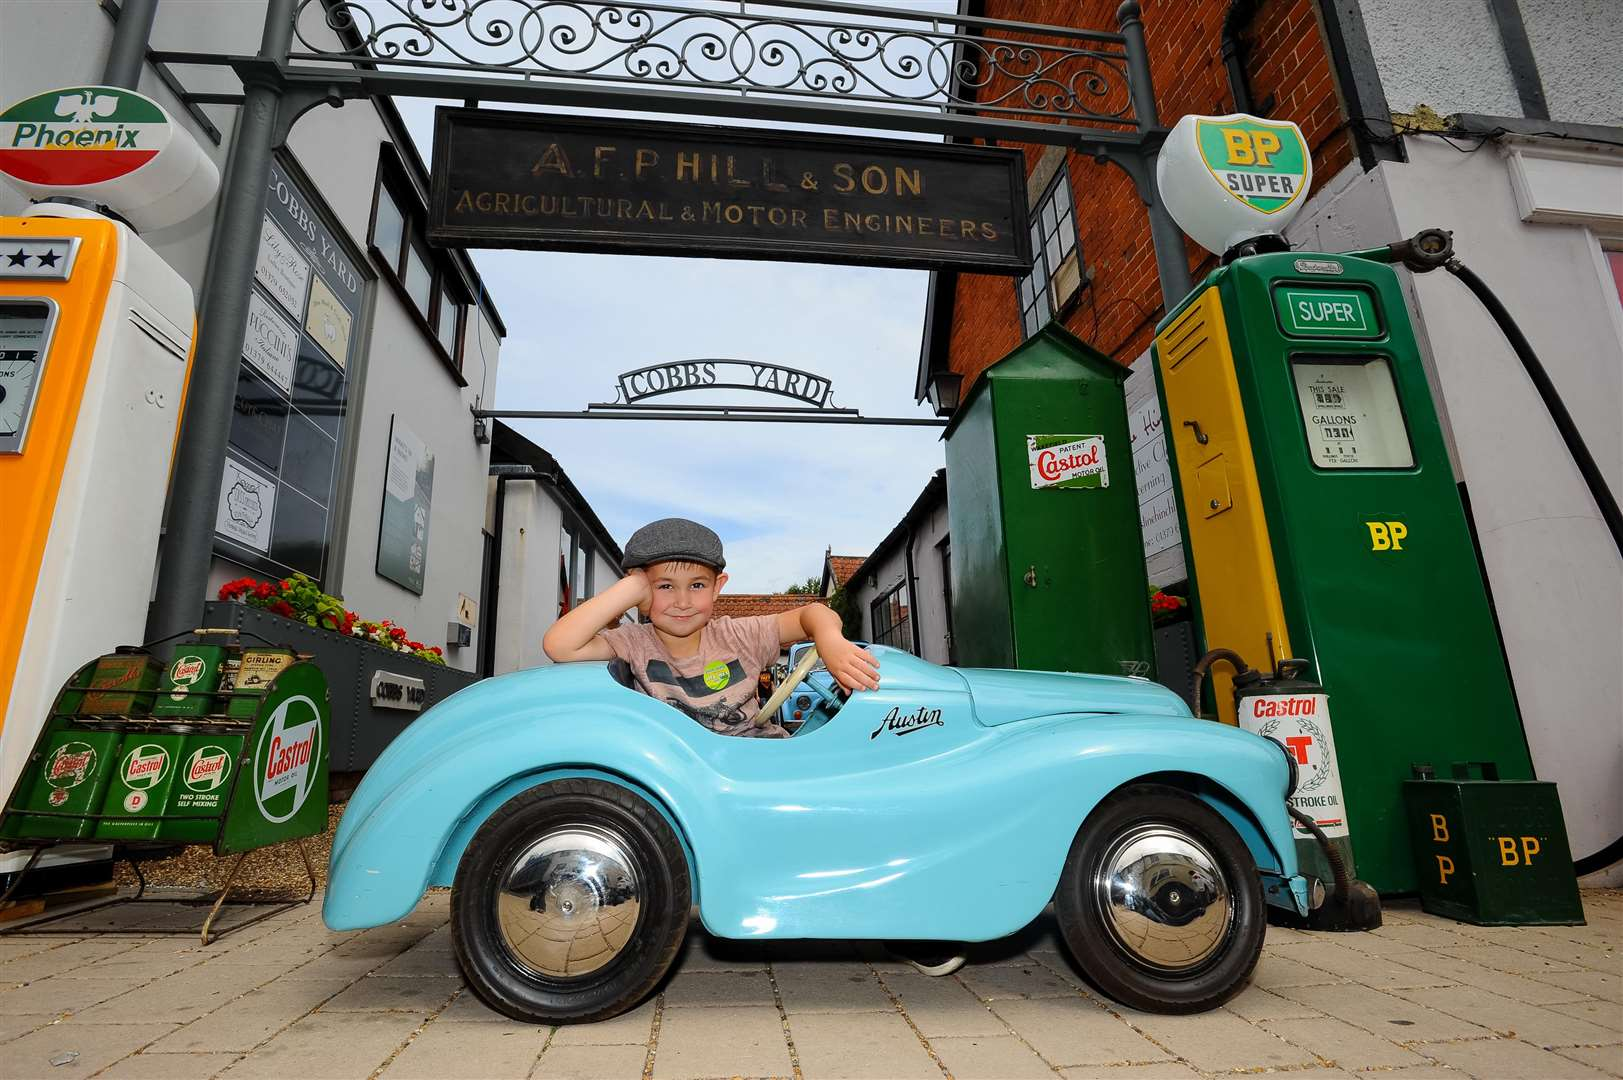 Joshua Vincent with Austin J40 pedal car from the 1960's. ..Picture by Mark Bullimore Photography.